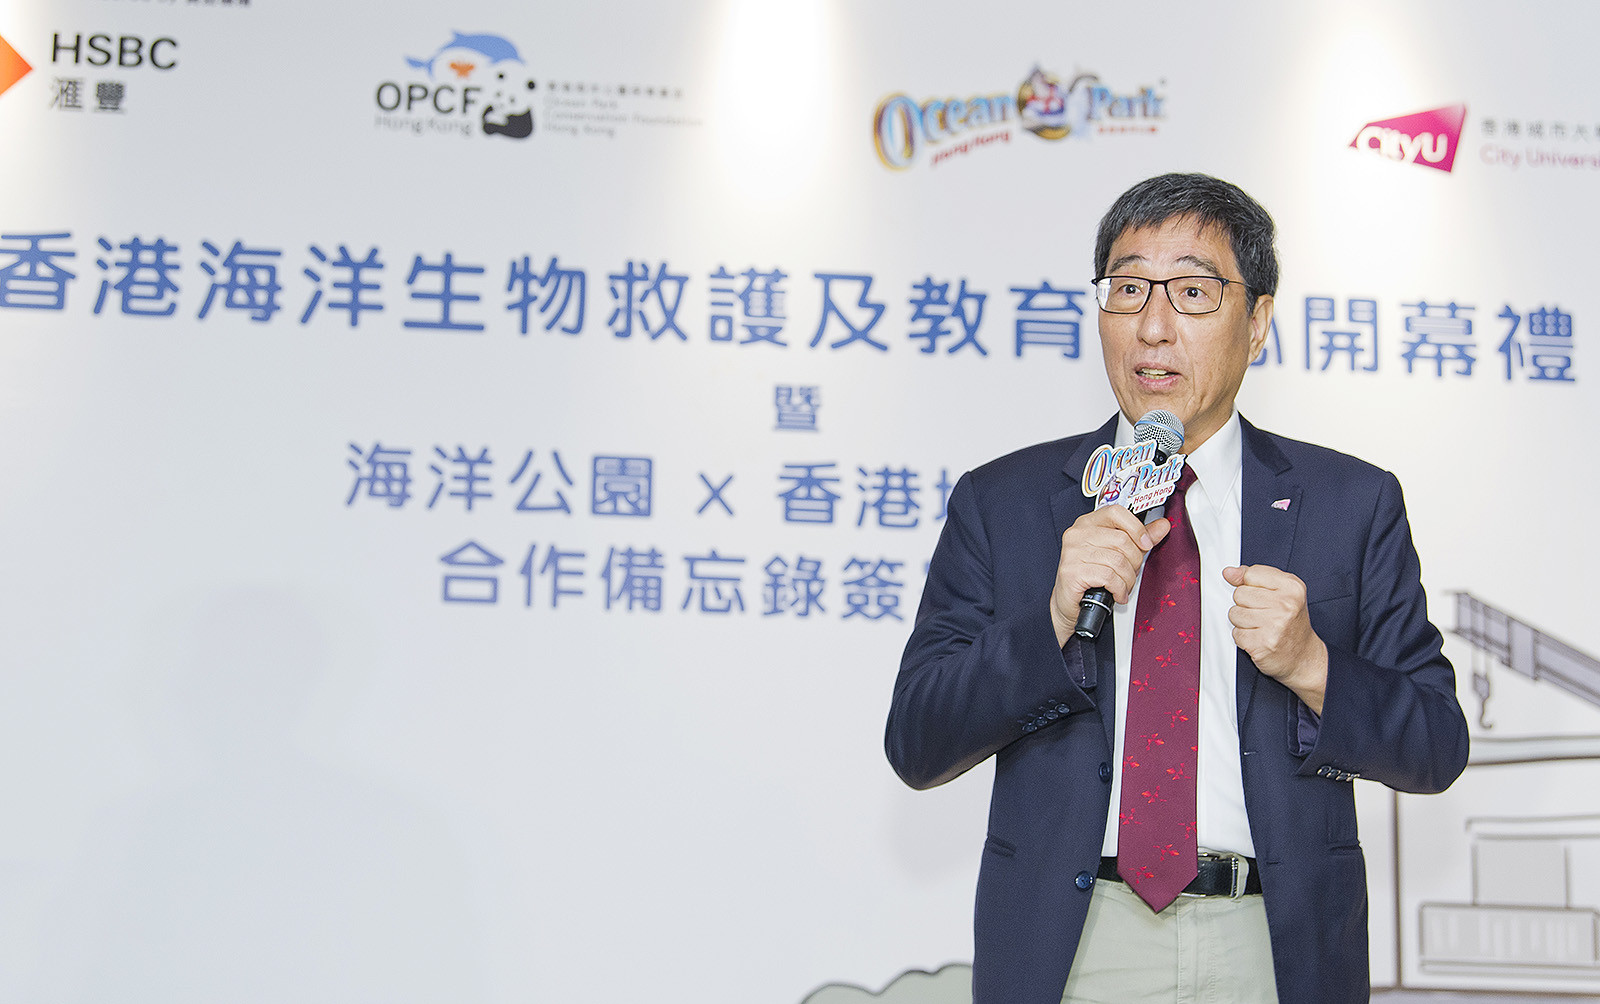 President Kuo says CityU and Ocean Park will share technological achievements with the public under the MOU.